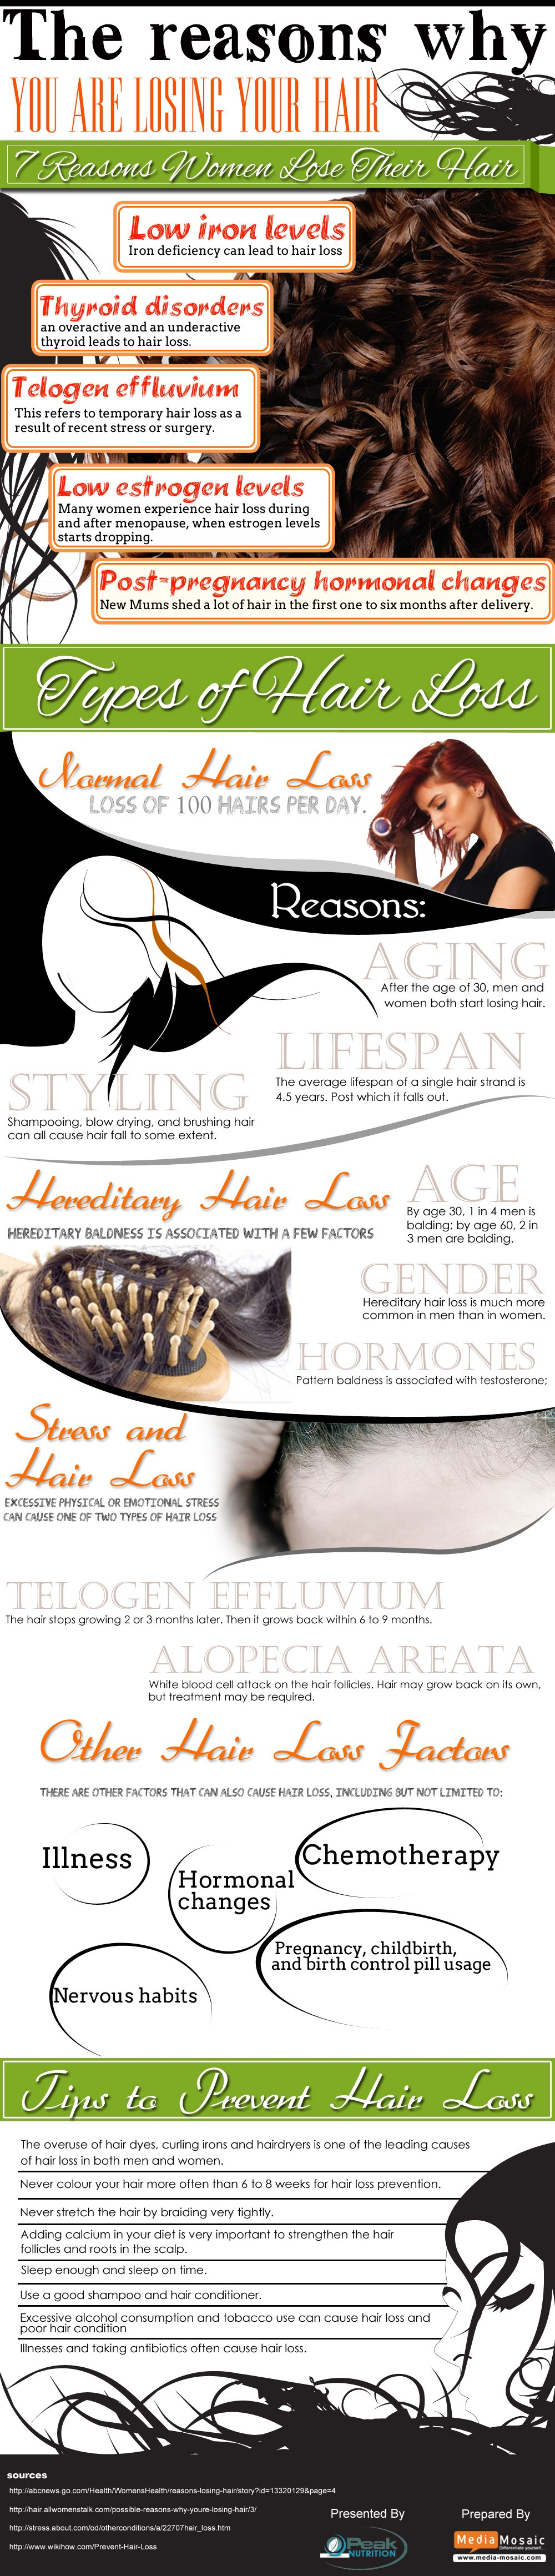 03 losing-hair-infographic2